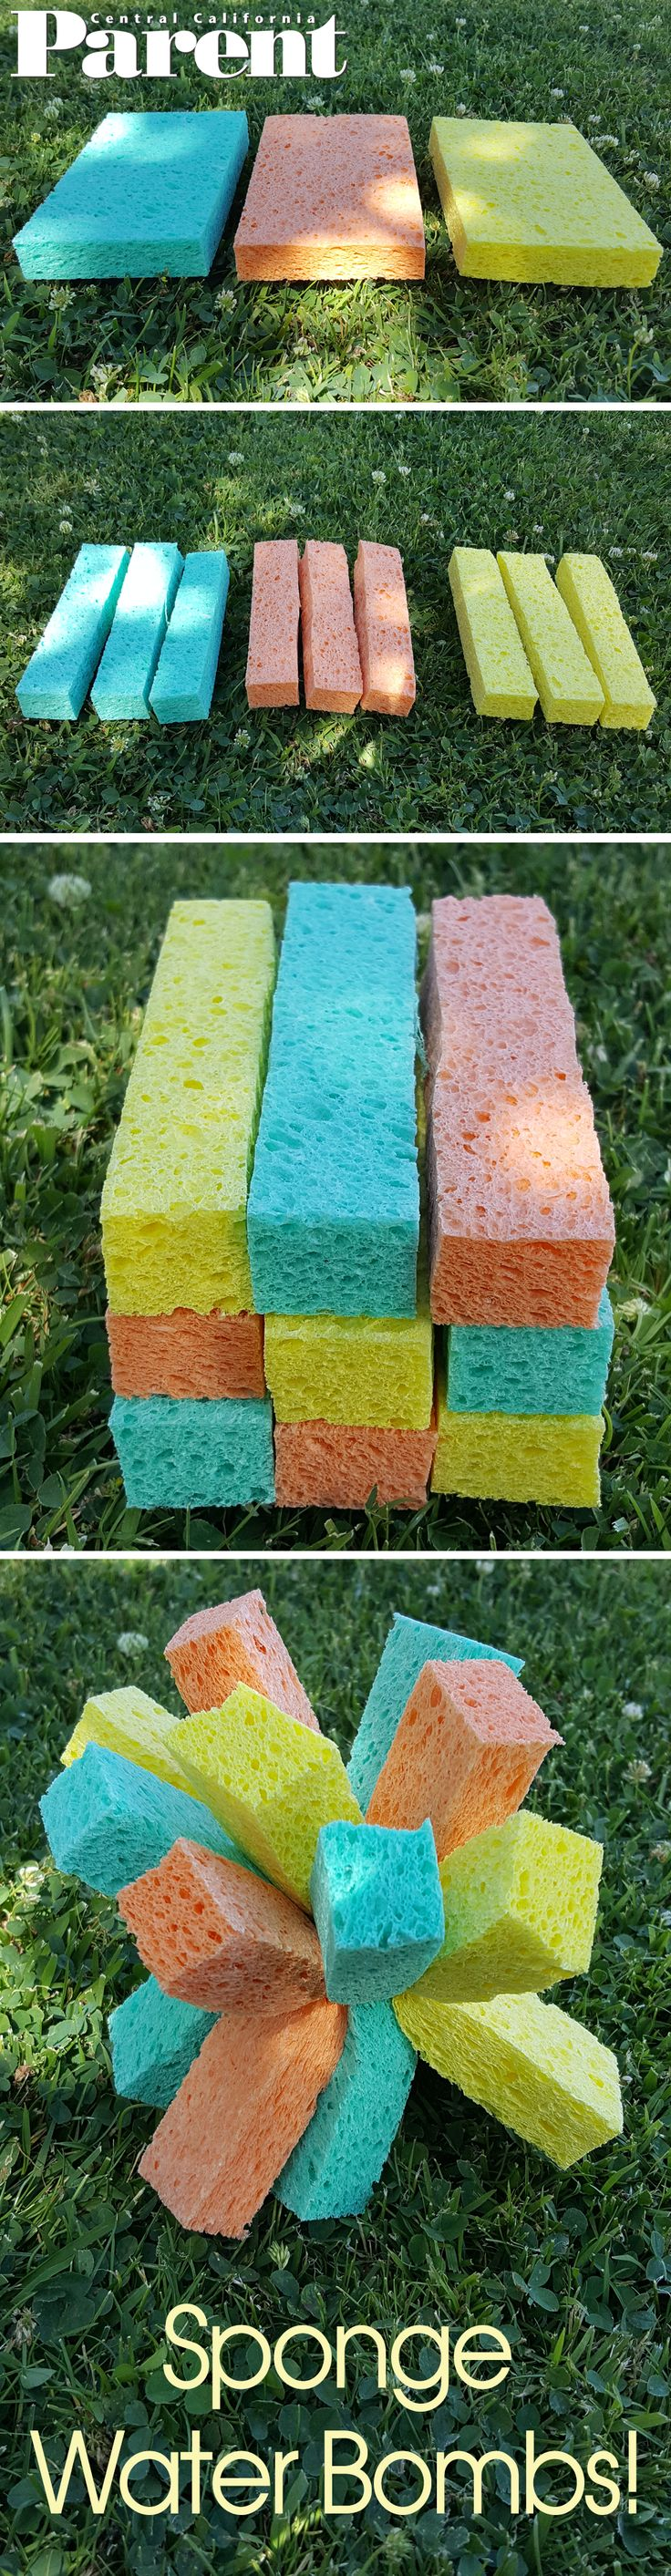 Sponge Water Bombs! These water bombs are quite possibly the easiest thing you will make all year! Make a few to play toss or make a bunch and have an all out water war! | Central California Parent